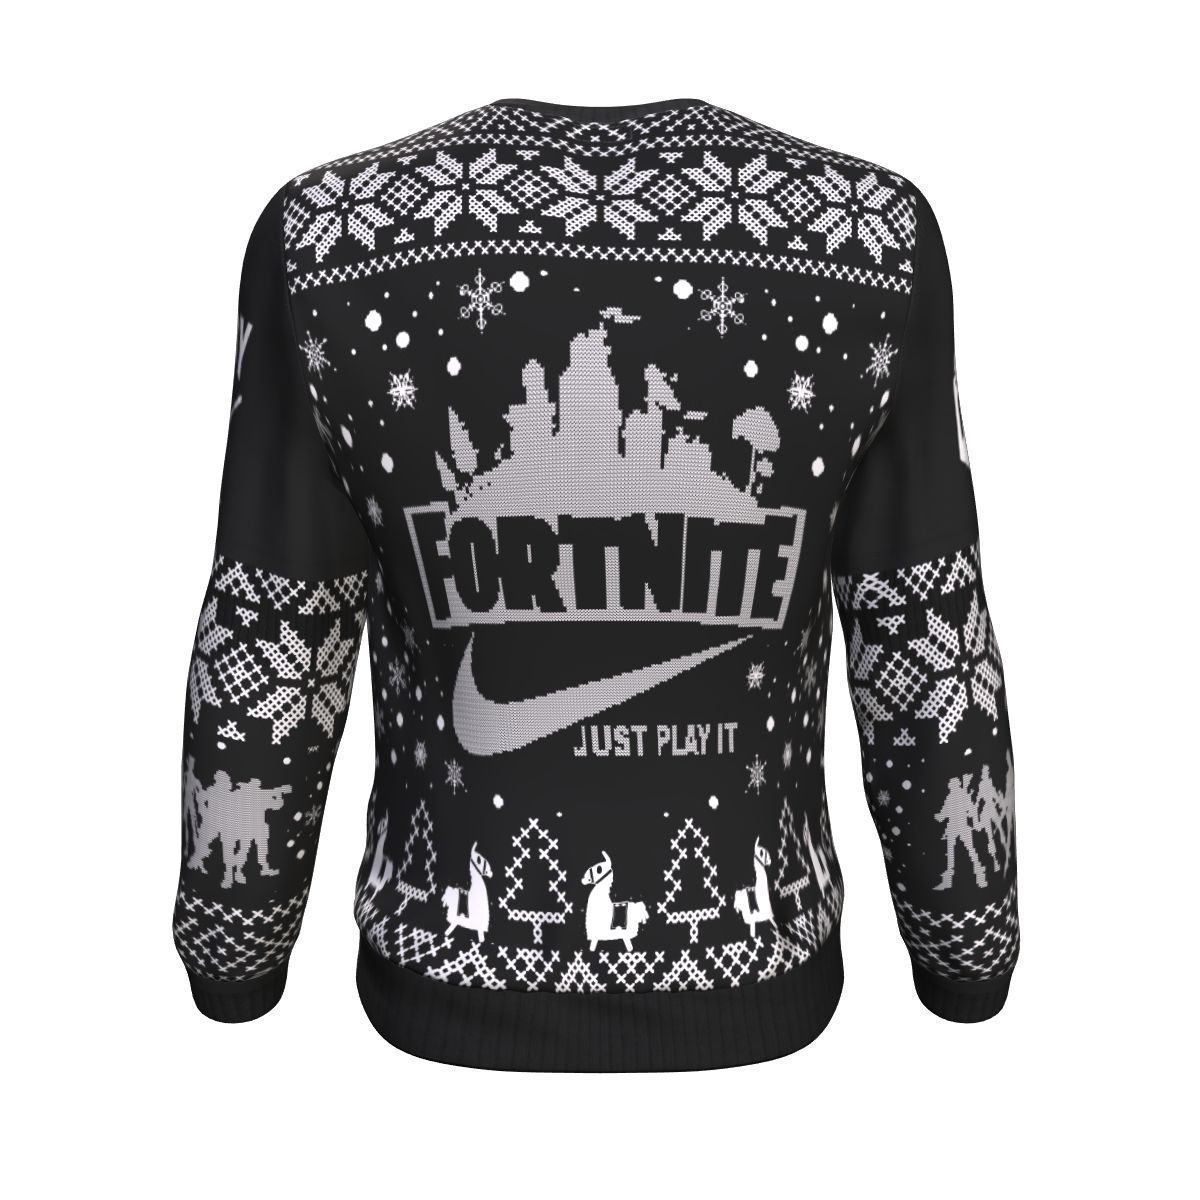 64fc6cce Fortnite Battle Royale X Nike Just Play It All Over Printed Sweater.  Saturdays Are For Victory Fortnite Battle Royale Shirts Teeqq Store